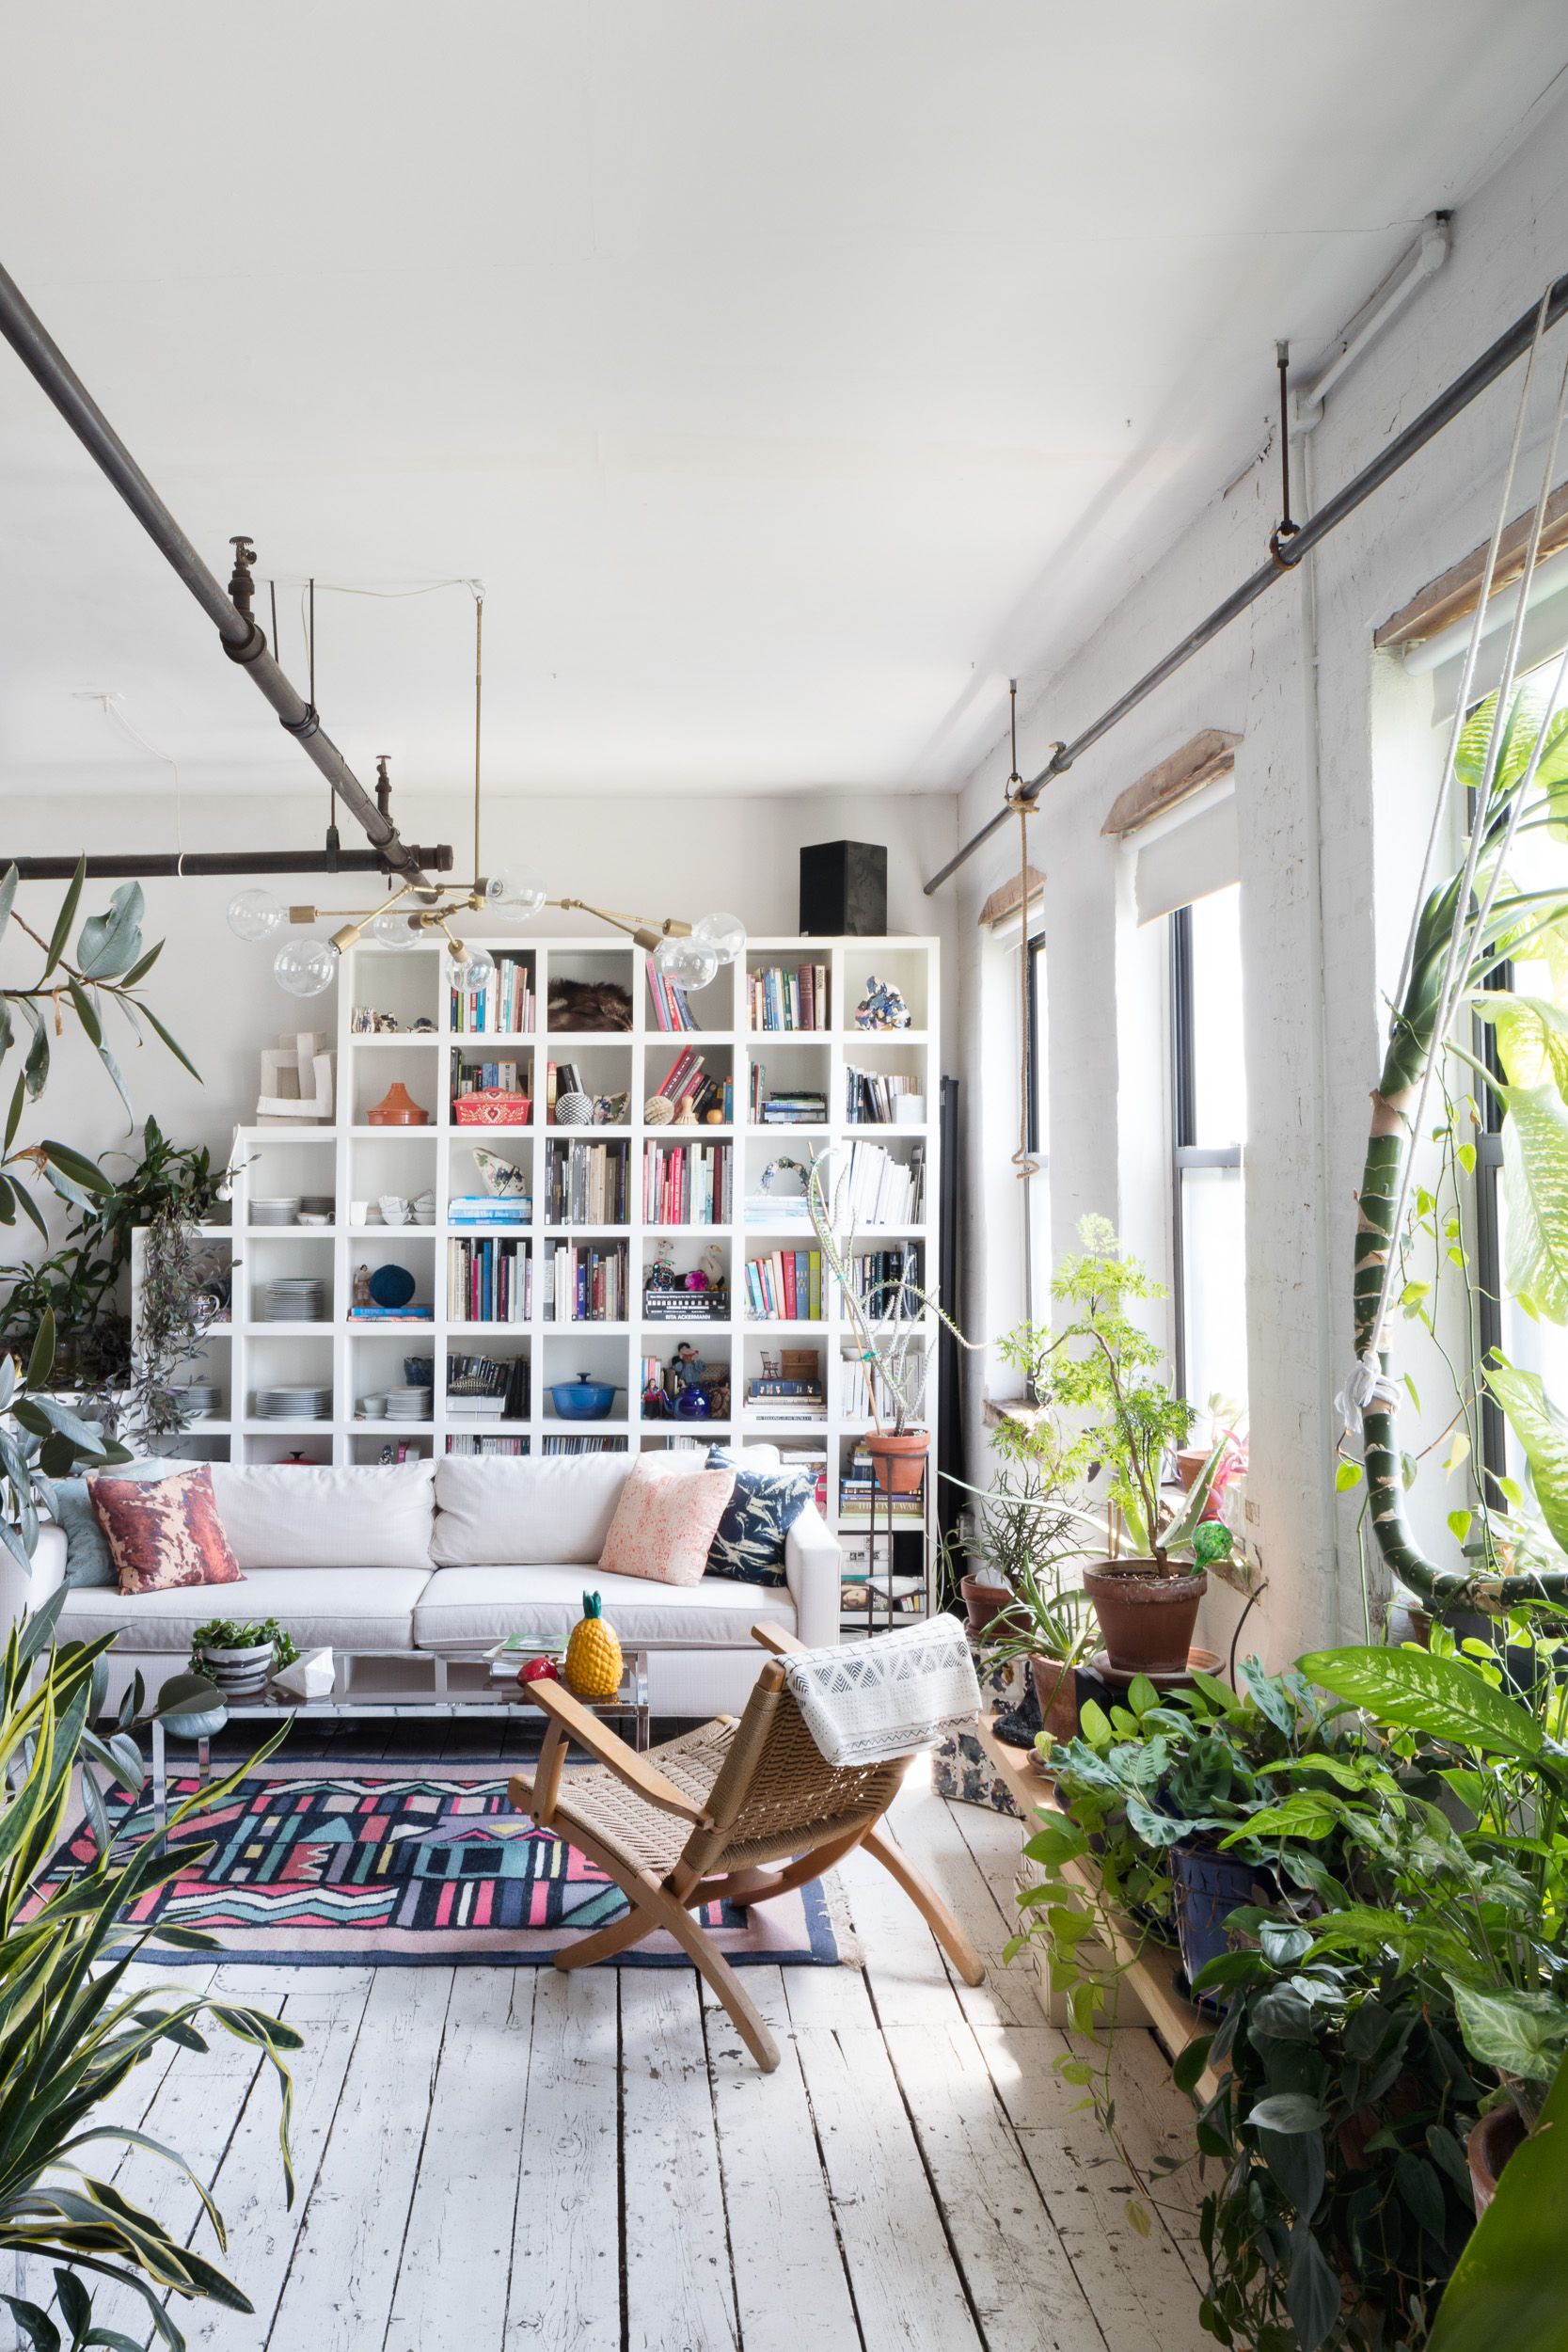 20 Creative Indoor Plants Ideas That Will Bring Tropical Atmosphere To Your Home